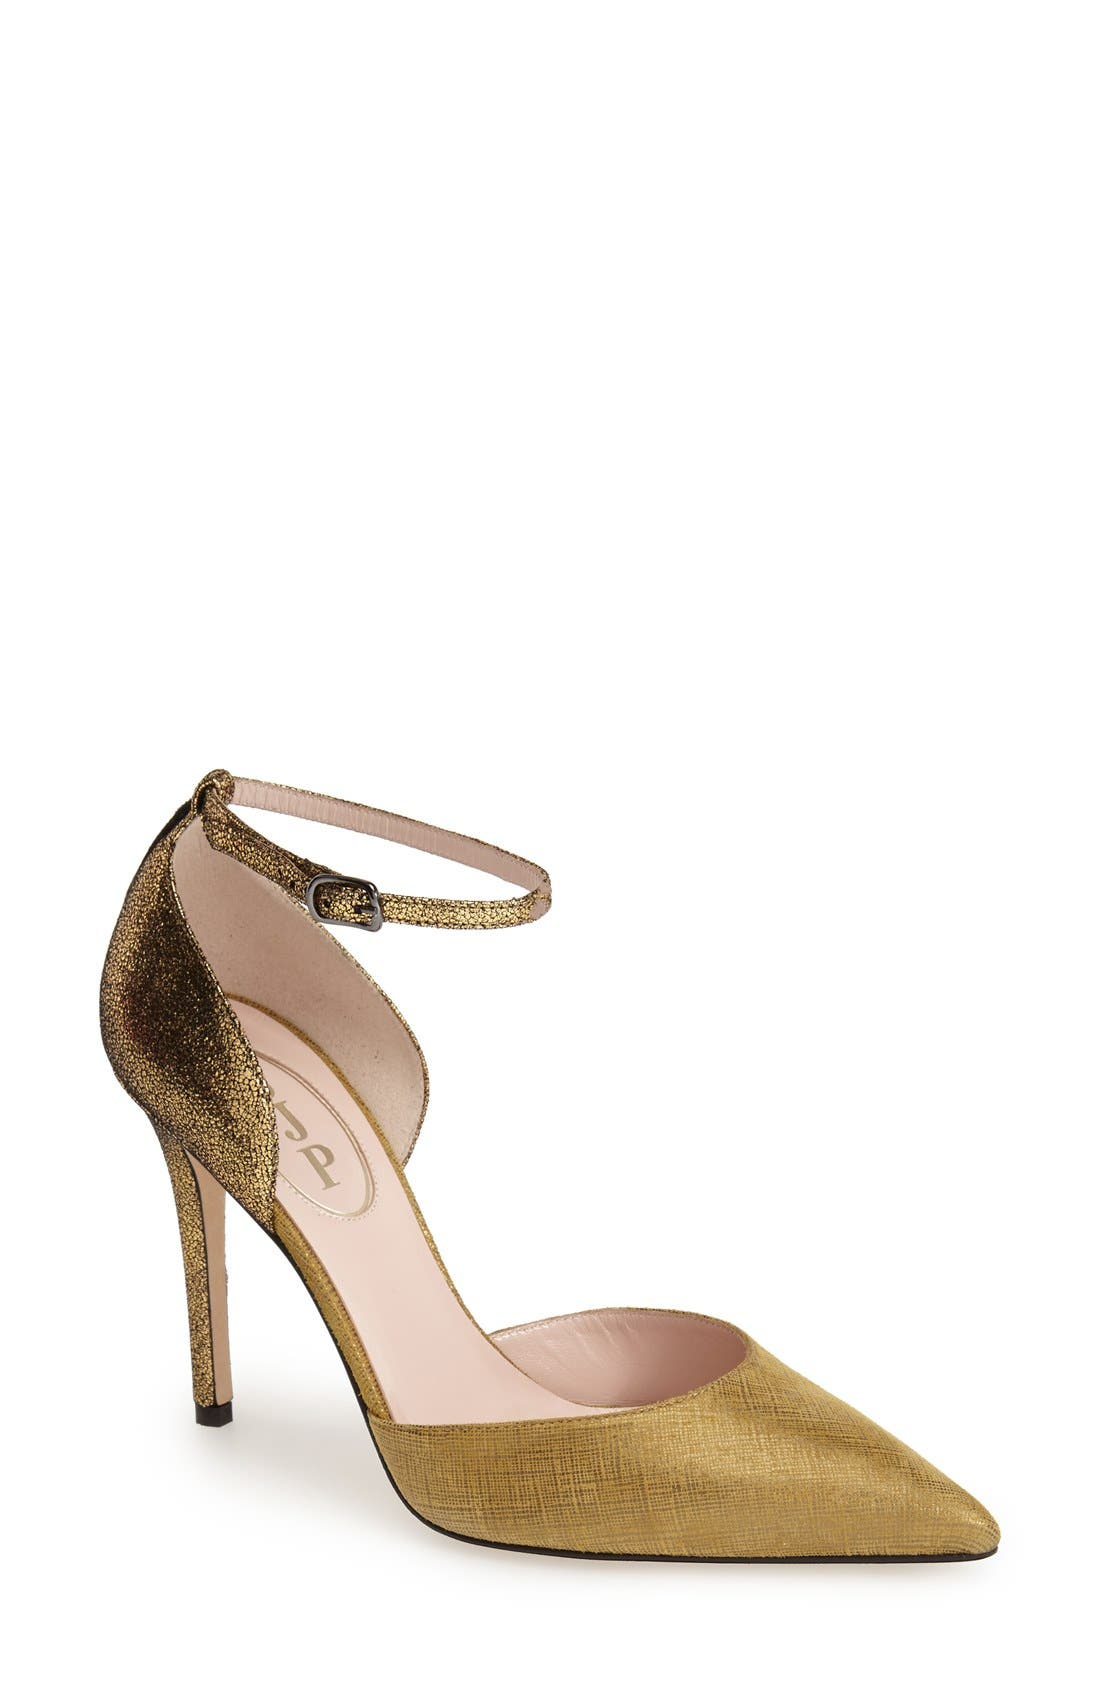 Alternate Image 1 Selected - SJP by Sarah Jessica Parker 'Bella' Pointy Toe Ankle Strap Pump (Women) (Nordstrom Exclusive)